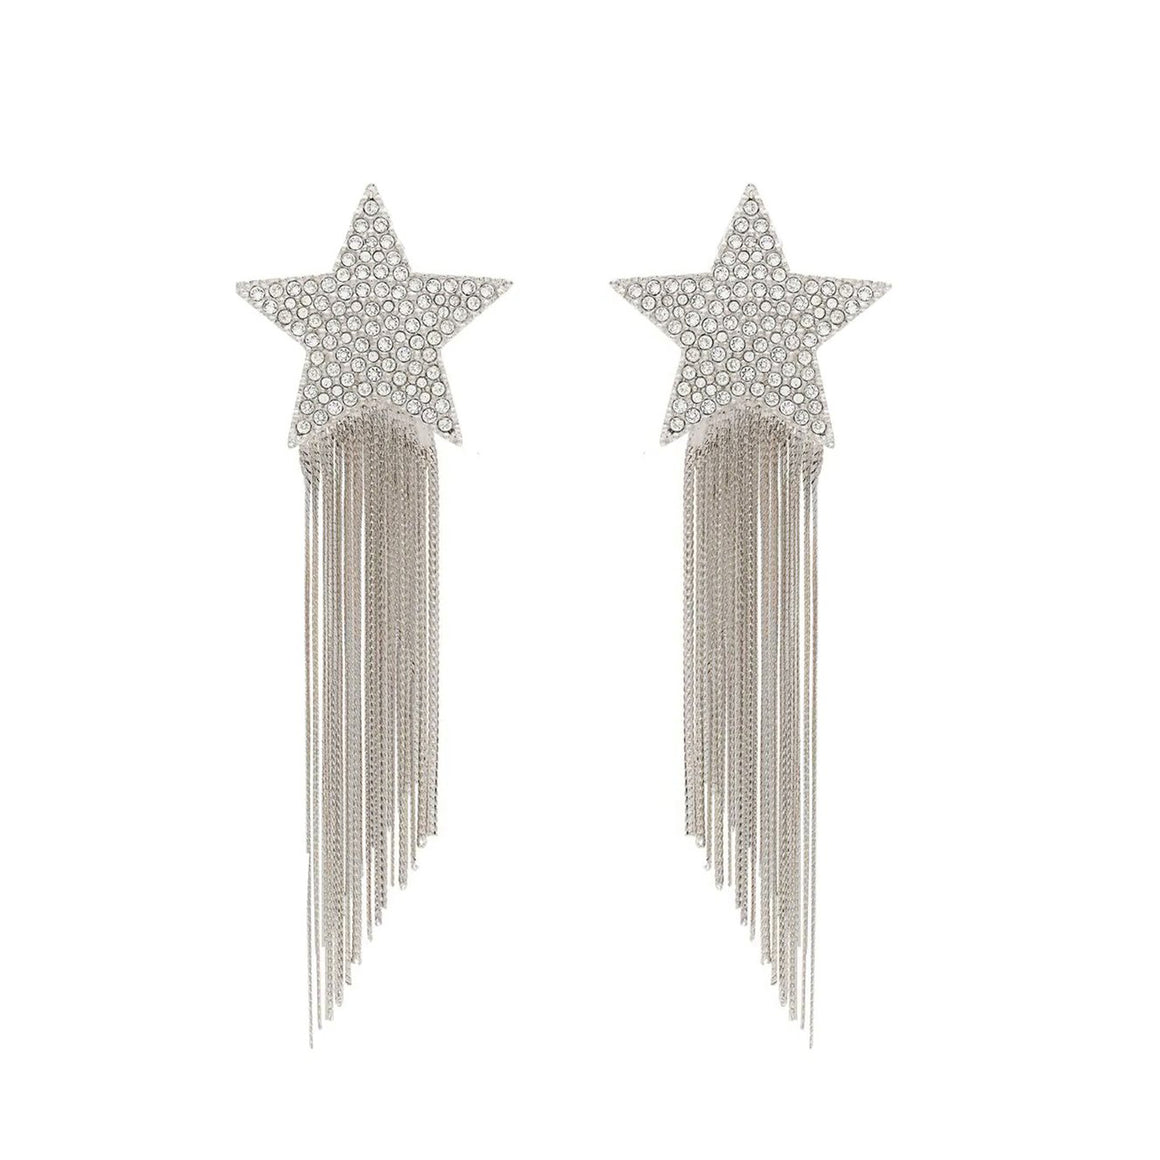 STAR STUDDED EARRING